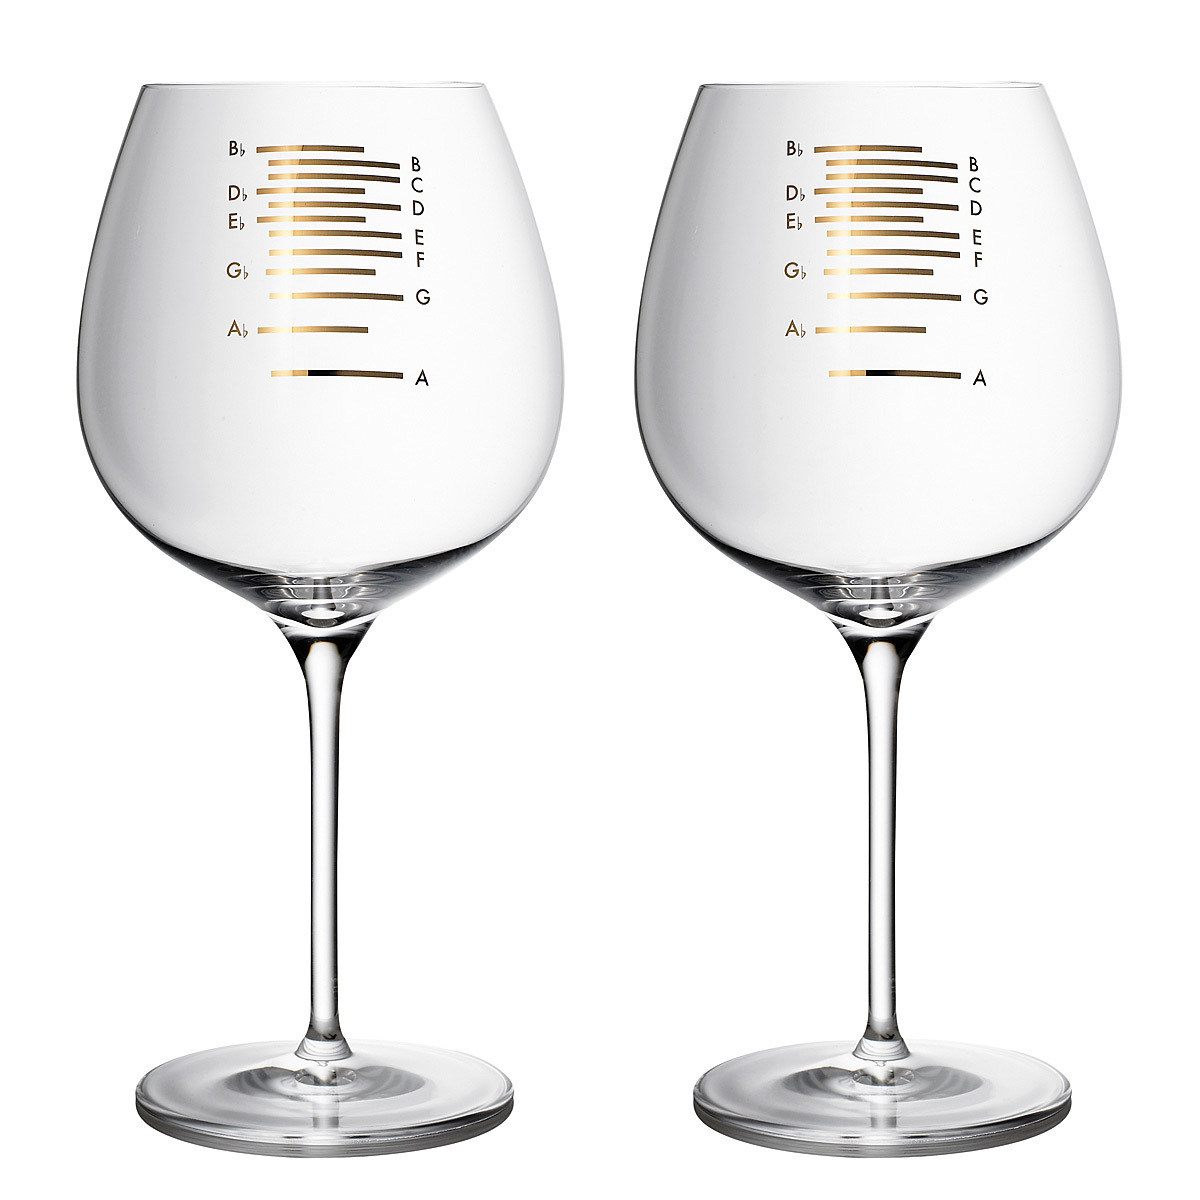 """GOLD MUSICAL WINE GLASS"" Wine and dine in perfect time! Get your next dinner party humming when you turn your sips into a symphony with these gilded glasses turned musical instruments. The etchings on the glasses are musical notations that correspond to the level of the liquid. When the user drinks to D for example, he or she may run a finger along the rim of the glass to create its lush, sonorous note. Or, for the more percussive partier, the same note will ring out with a gentle rap of his or her utensil on the side of the glass. ____________________ Time to bust out my rendition of ""Call Me, Maybe"" with some Chandon Carneros Reserve Pinot Noir, 2009."